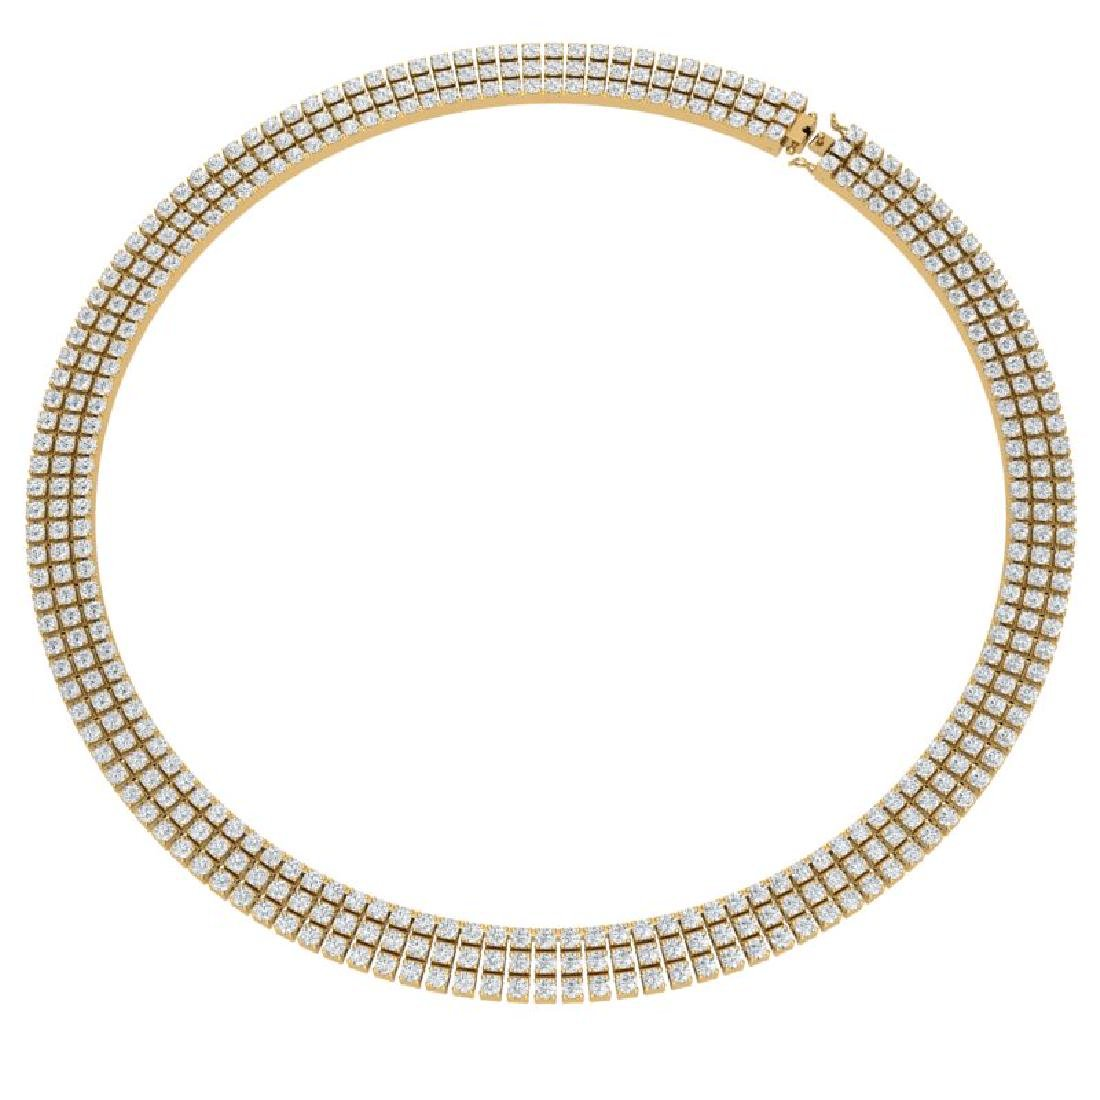 30 CTW Certified SI/I Diamond Necklace 18K Yellow Gold - 3